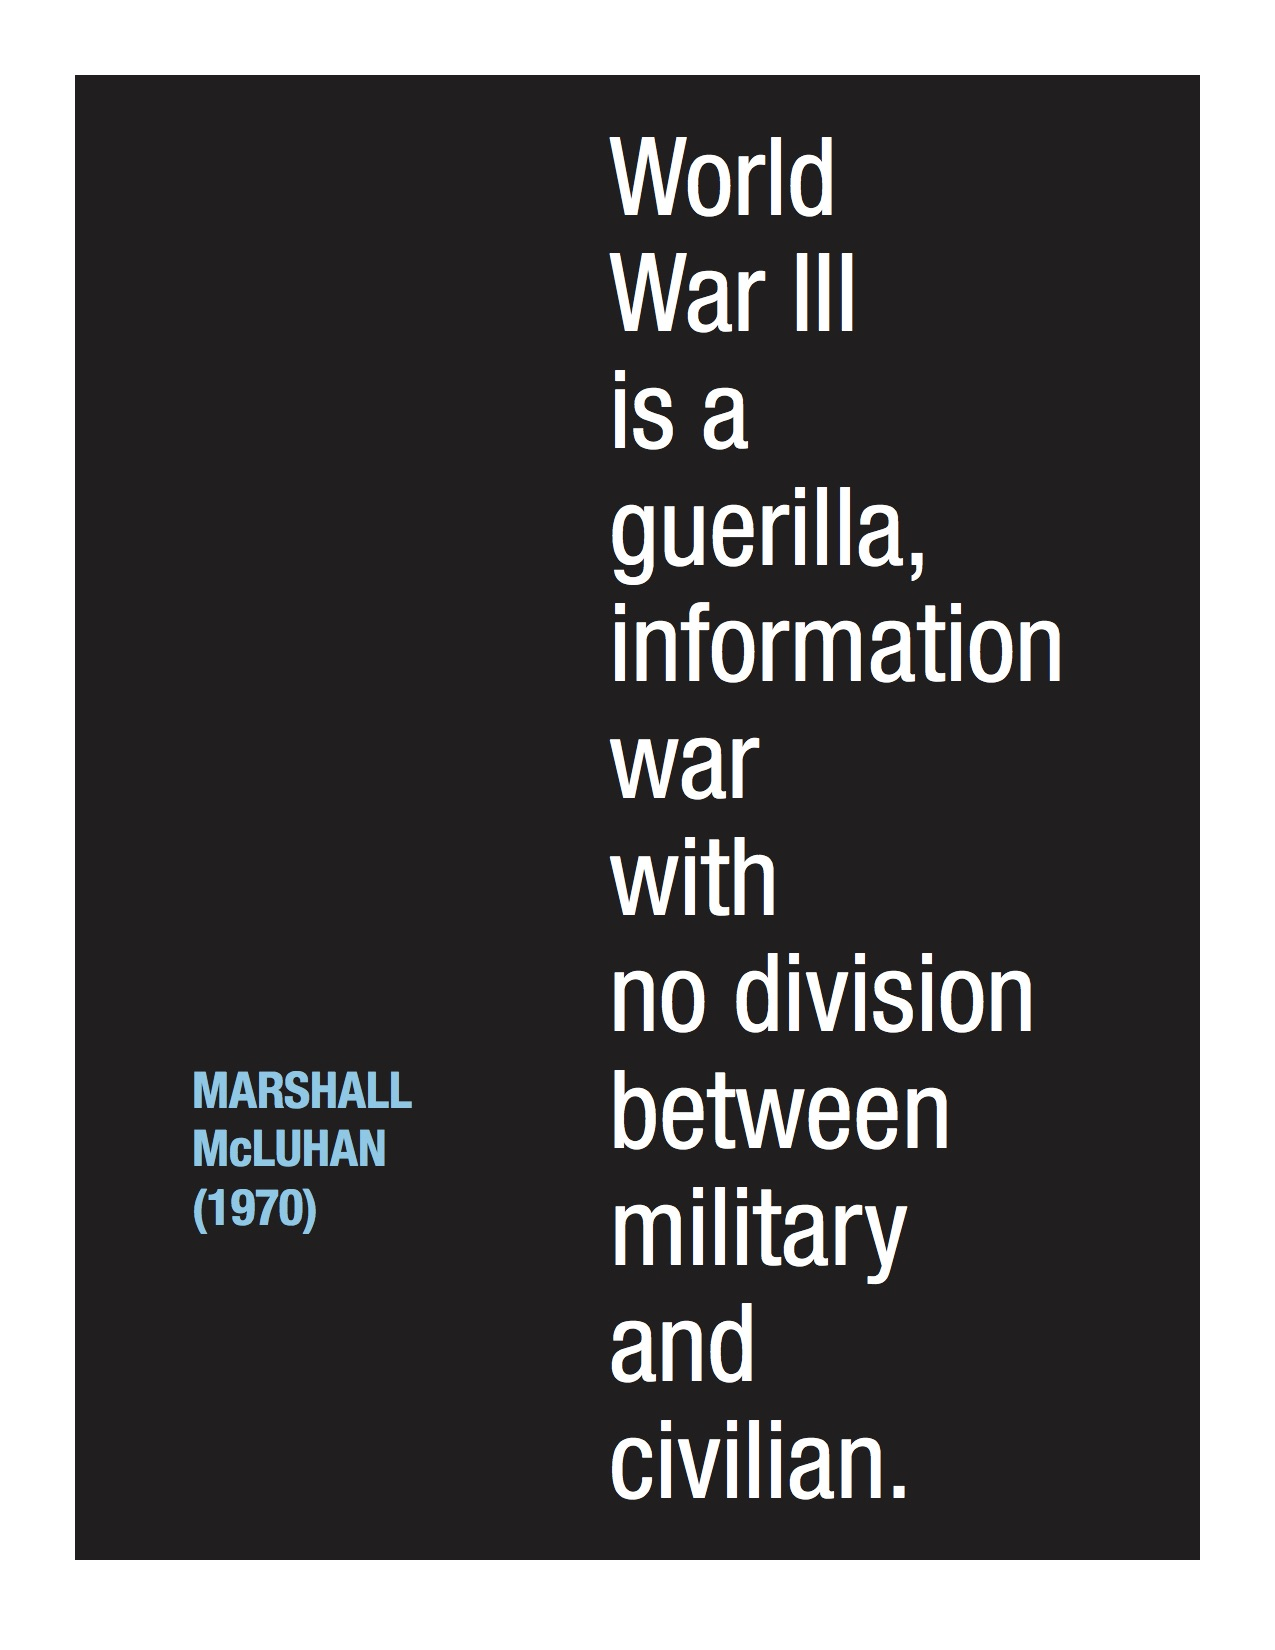 McLuhan War text